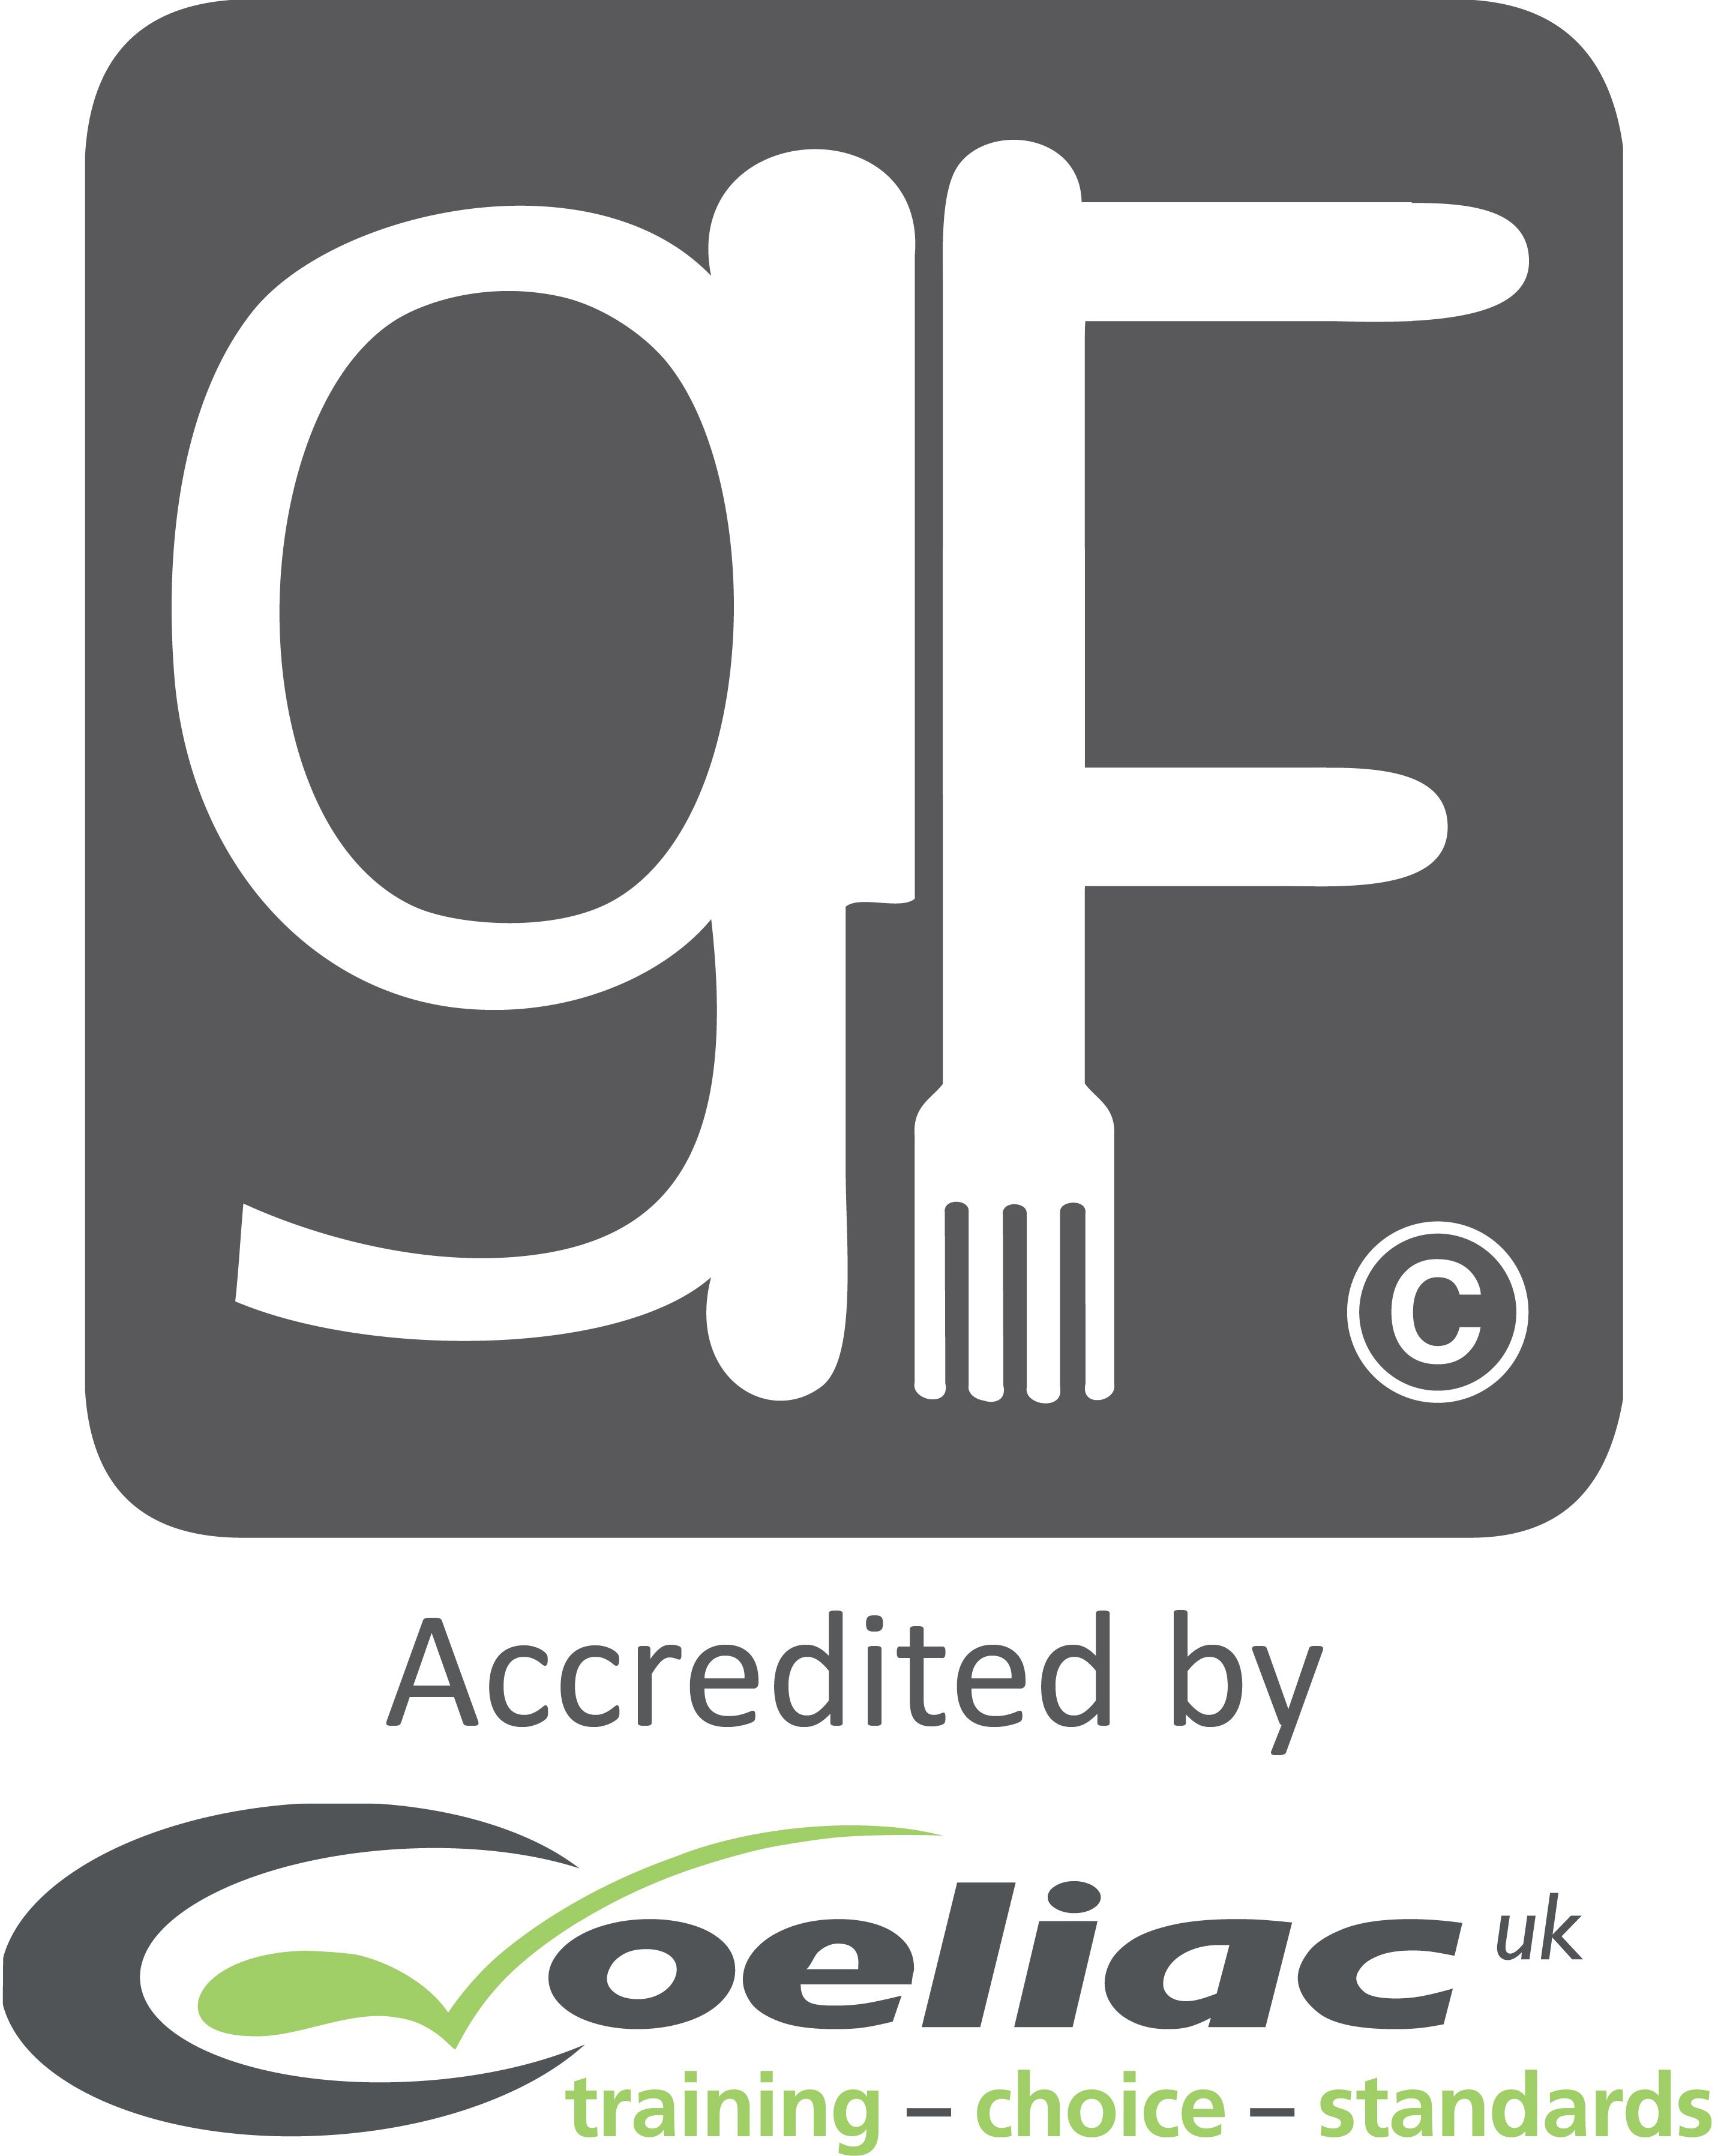 GF logo accredited by